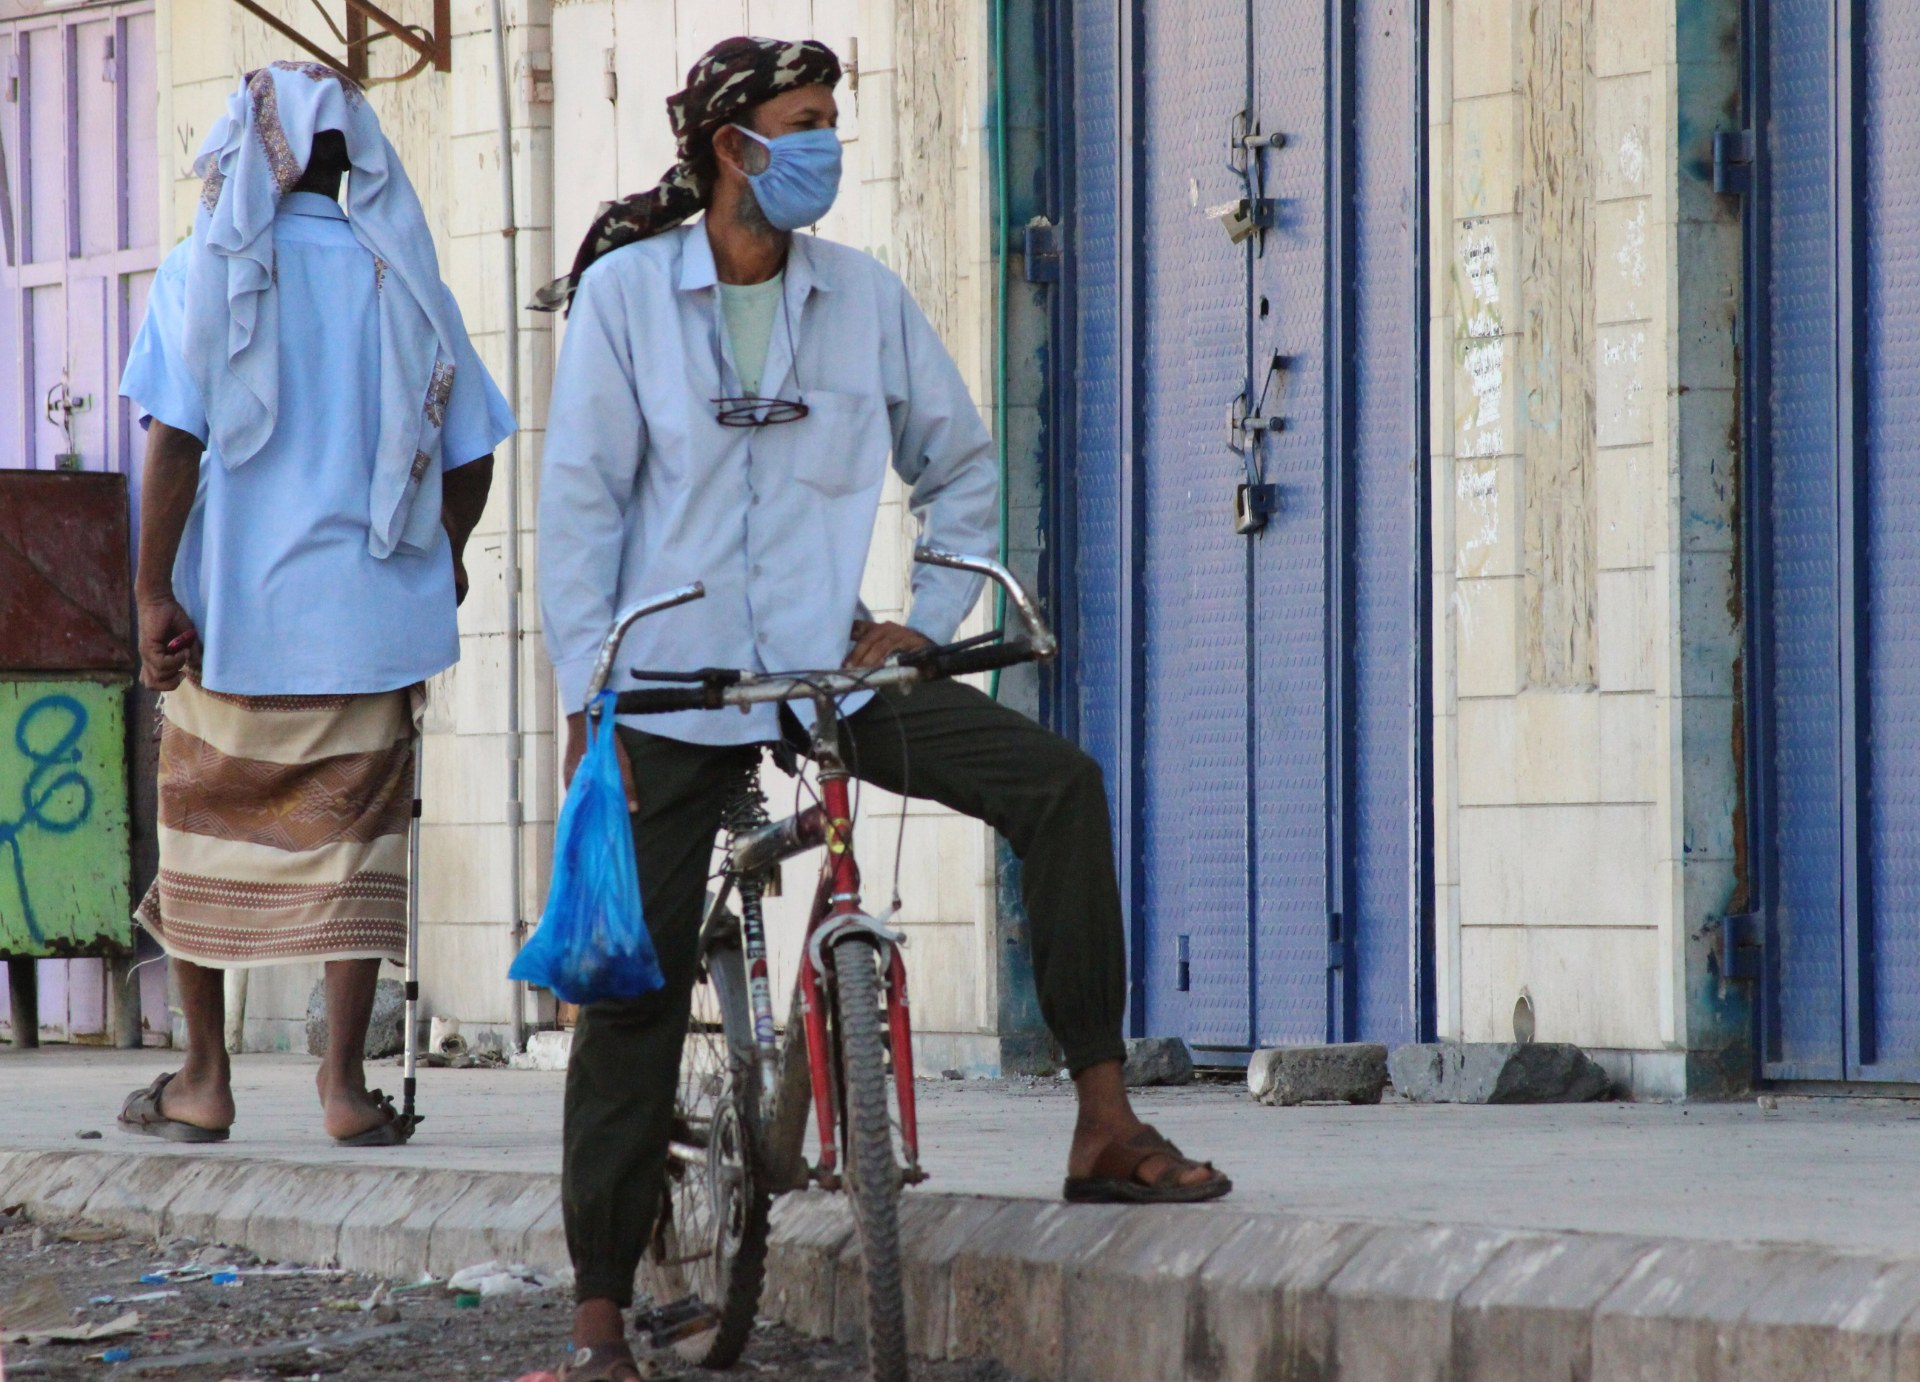 A man wearing a protecitve face mask rides a bicycle during a curfew amid concerns about the spread of the coronavirus disease (COVID-19) in Aden (Reuters)